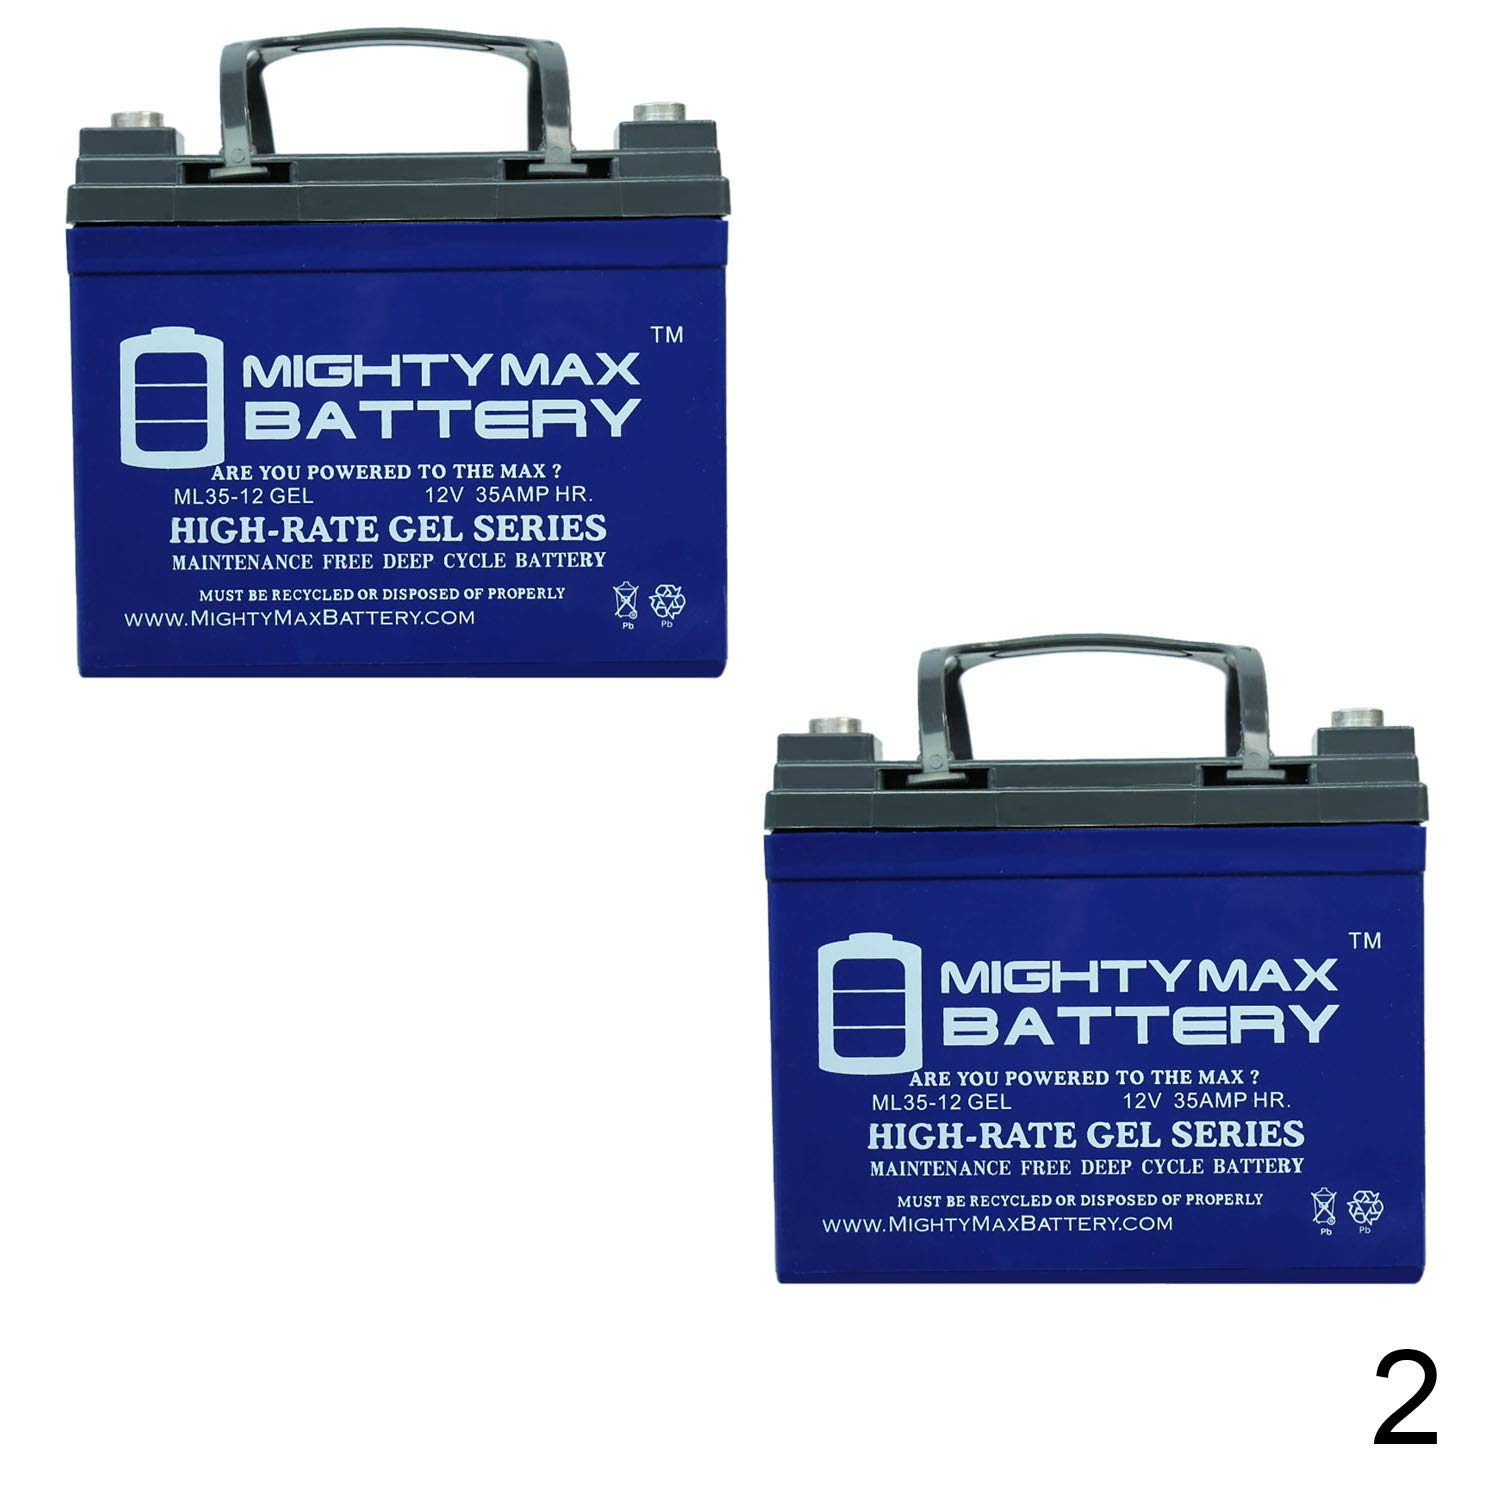 Amazon.com: Mighty Max Battery 12V 35AH Gel Battery for ... on pride jazzy wiring diagram, jazzy select brakes, jazzy 1122 wiring diagram, jazzy 1103 wiring diagram, jazzy power chair, jazzy 600 wiring diagram, jazzy scooter wiring diagram, jazzy select frame, jazzy select accessories, jazzy 1121 wiring diagram, jazzy elite wiring diagram, jazzy 1170 wiring diagram, jazzy select battery,